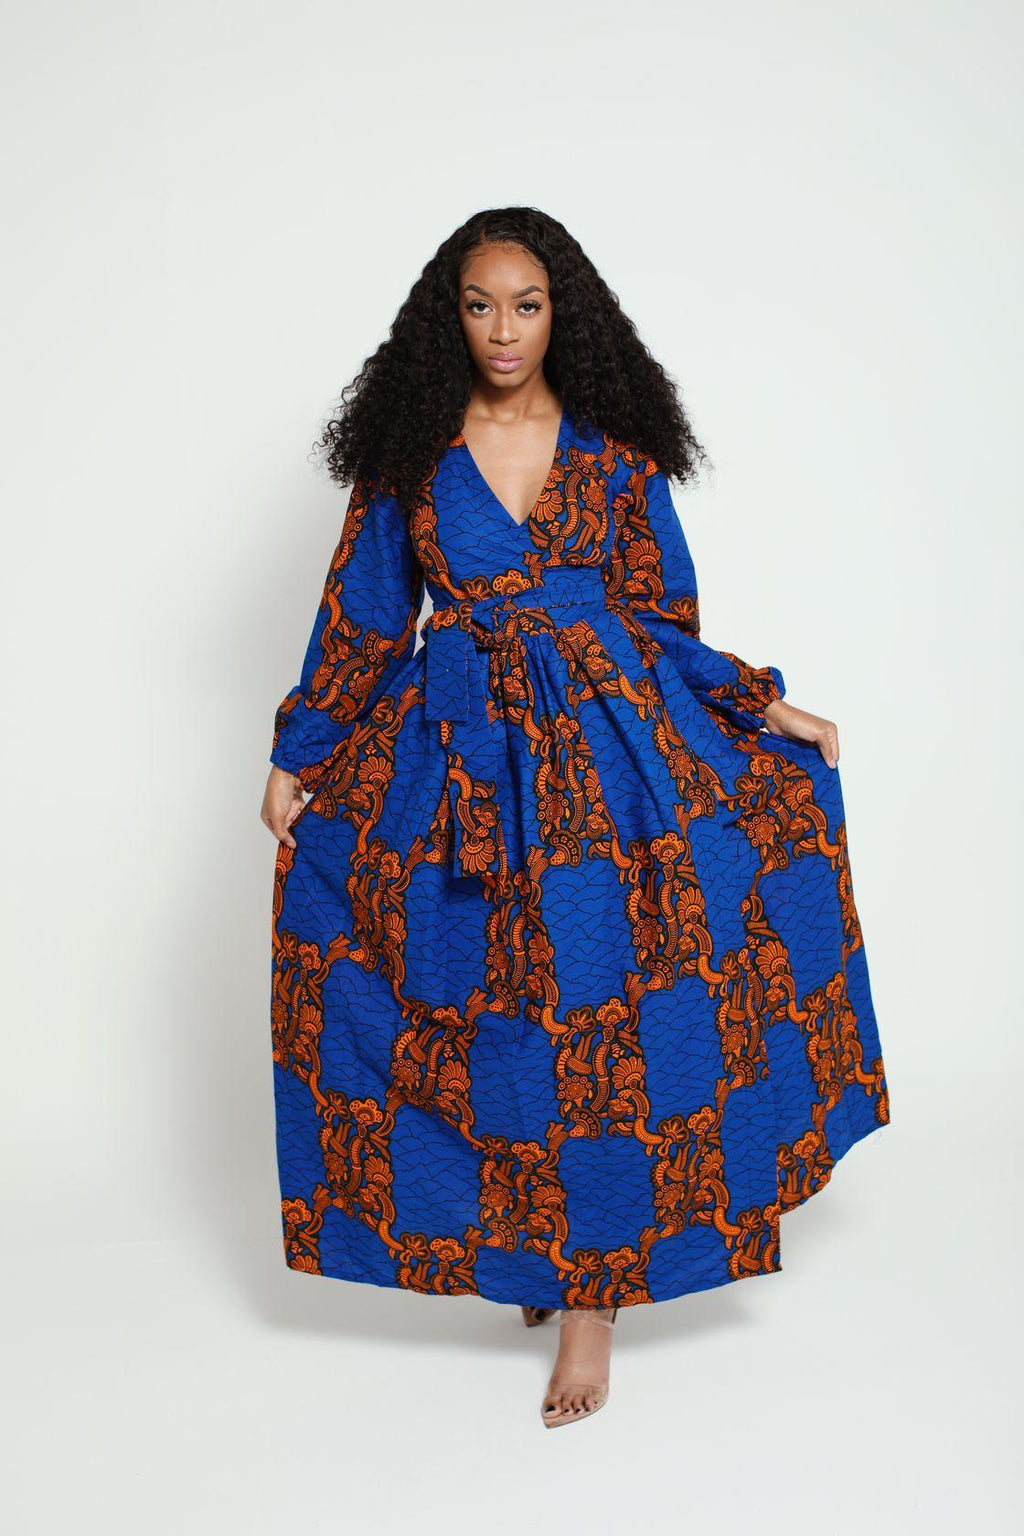 Bisola African Print Wrap dress.